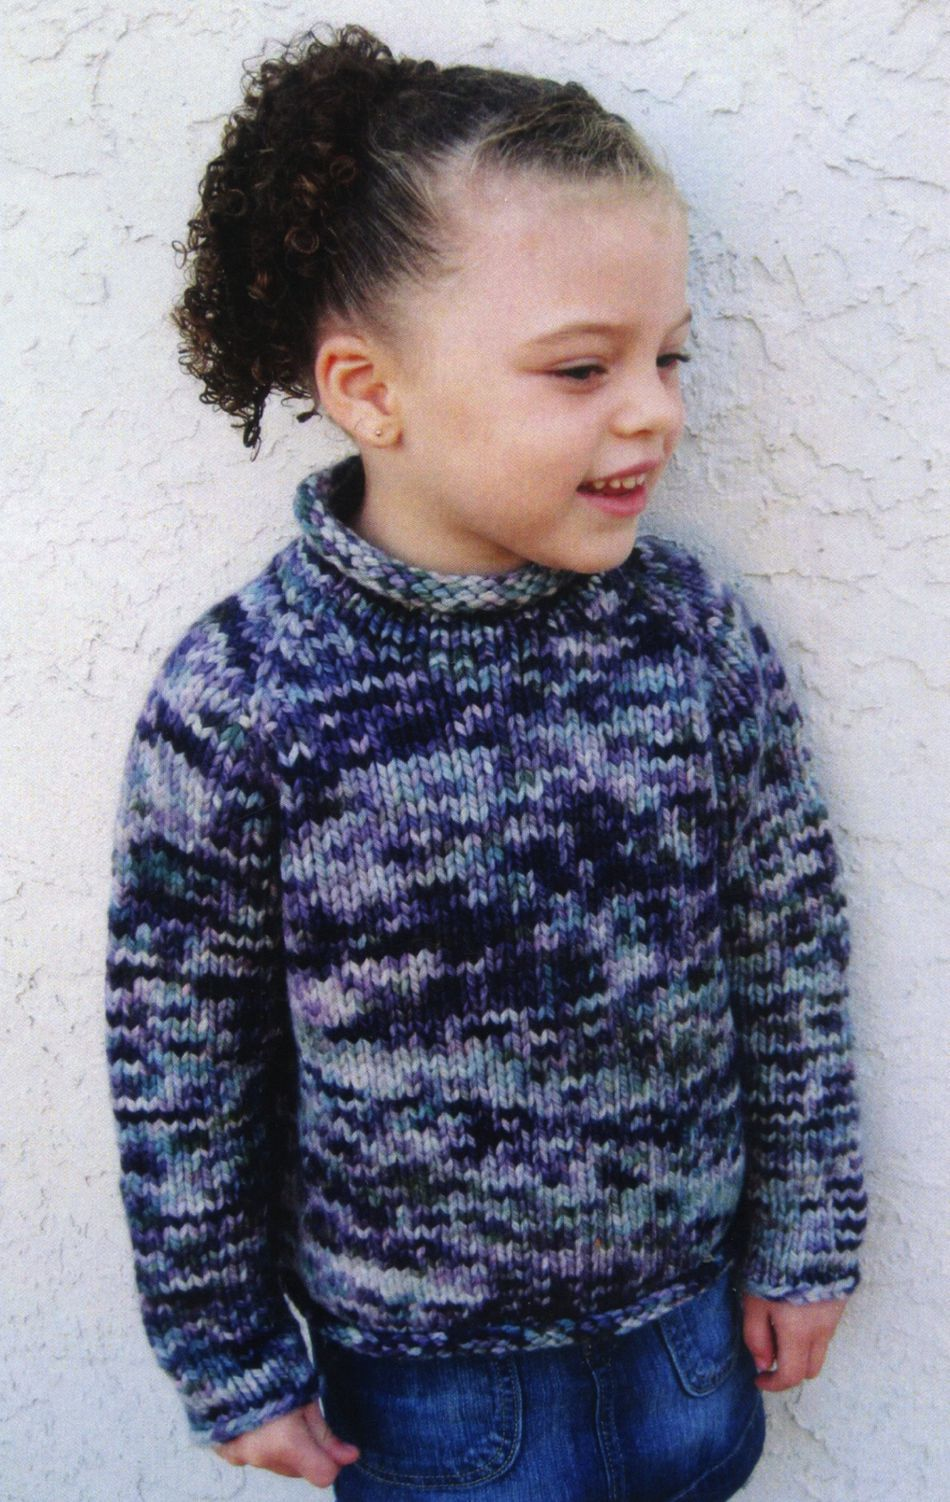 Knitting Patterns Childrenaposs Bulky Top Down Pullover by Knitting Pure and Simple